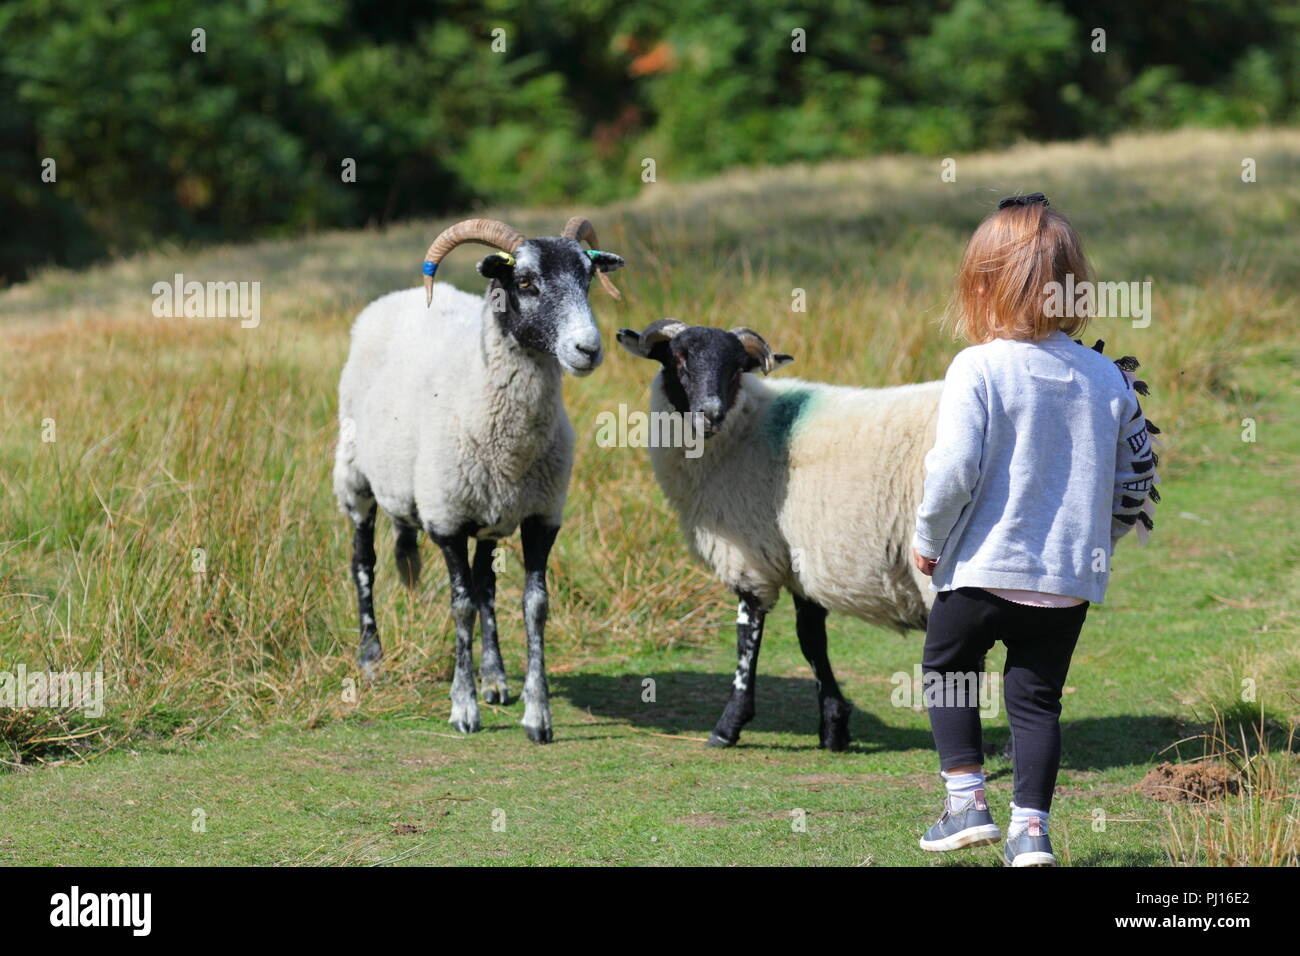 A  curious little girl walks up to Sheep grazing in the Upper Derwent Valley of The Peak District National Park. - Stock Image